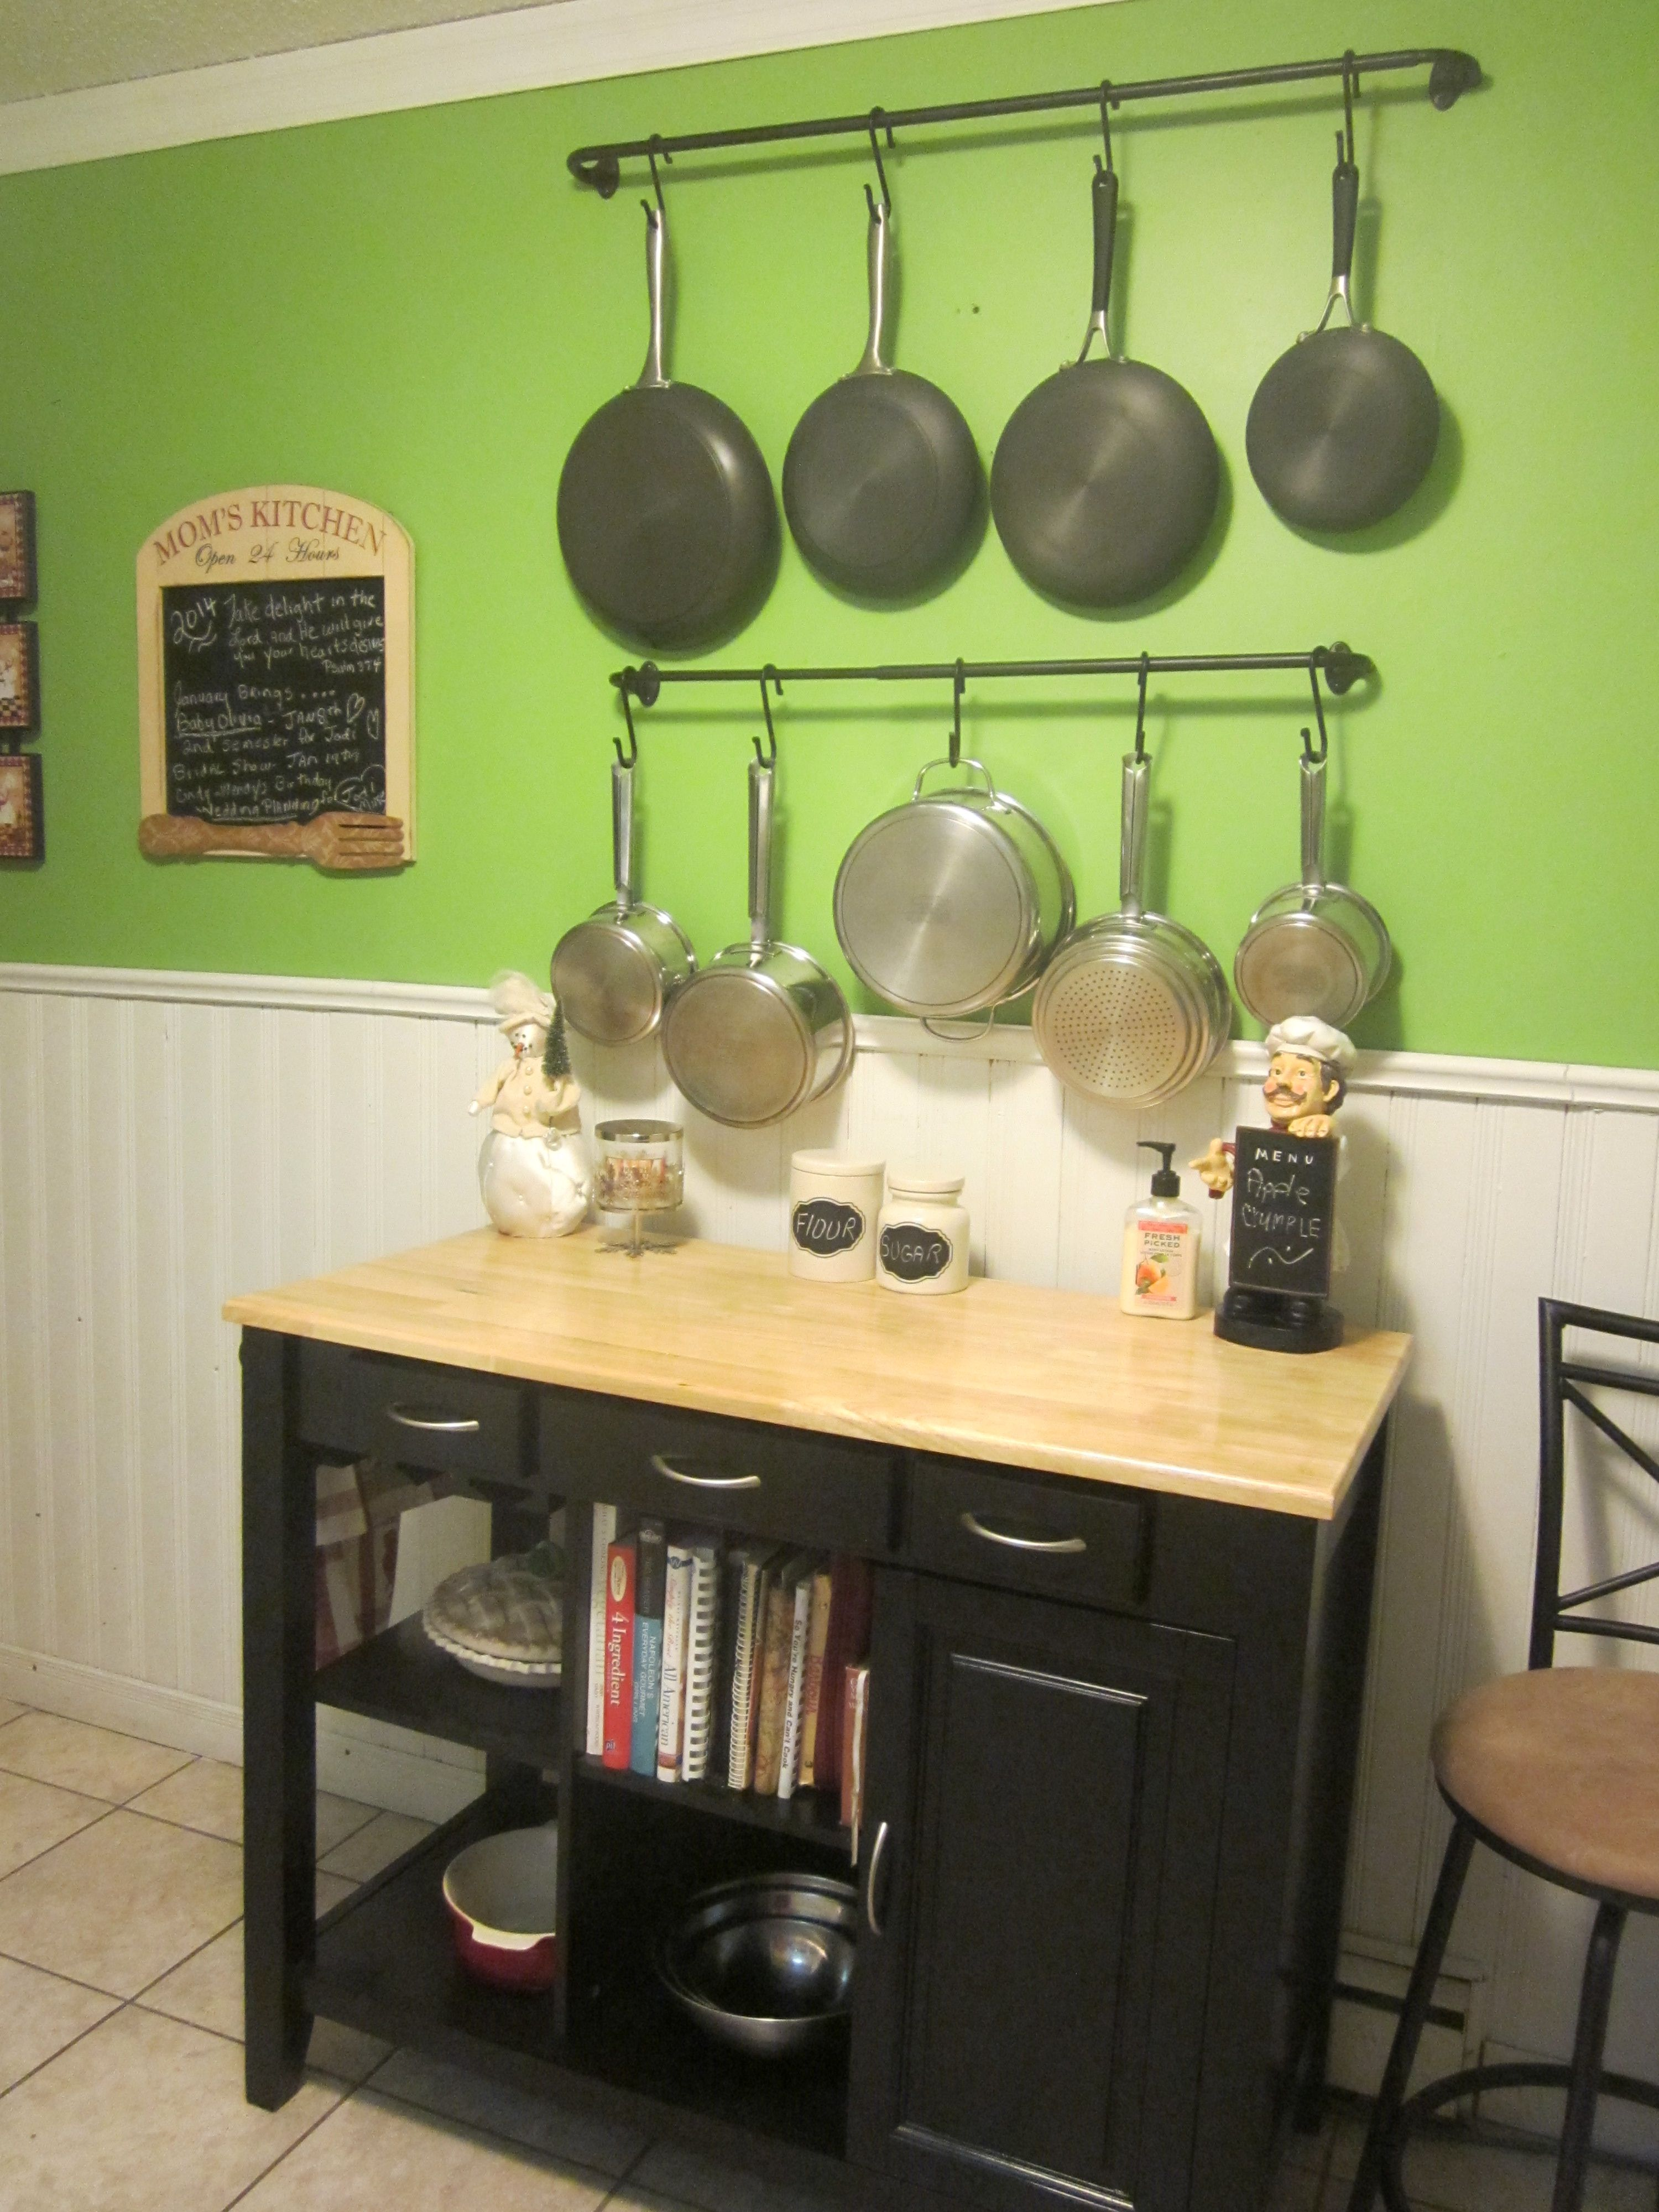 update on my diy pot holders and kitchen island Just added a hanger